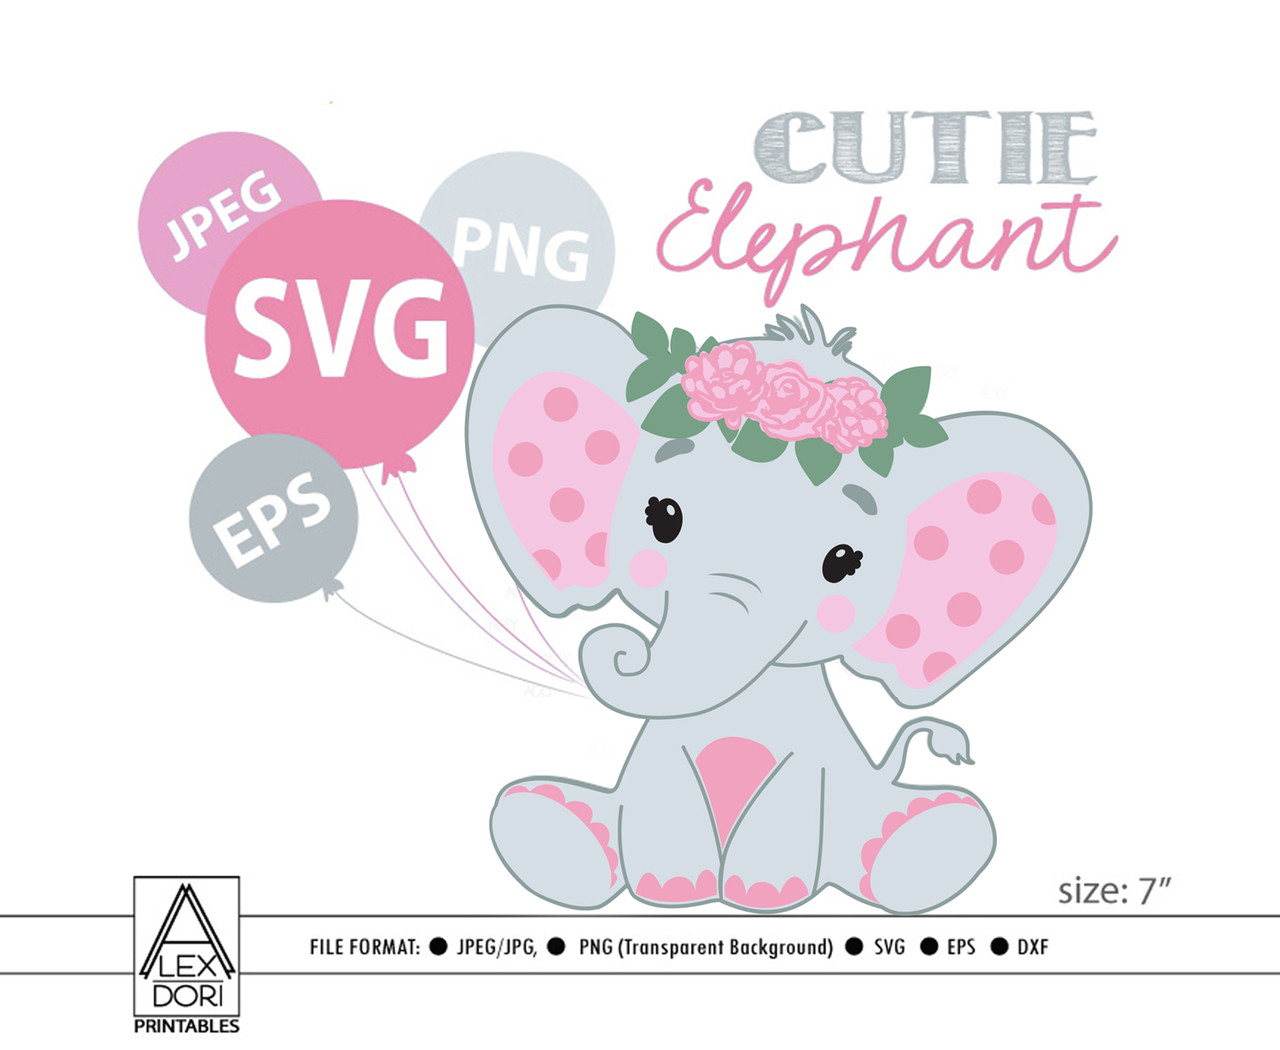 Svg Baby Girl Elephant For Baby Shower Girl Elephant Diaper Cake Pink Gray Peanut Flowers Roses Adly Invitations And Digital Party Designs